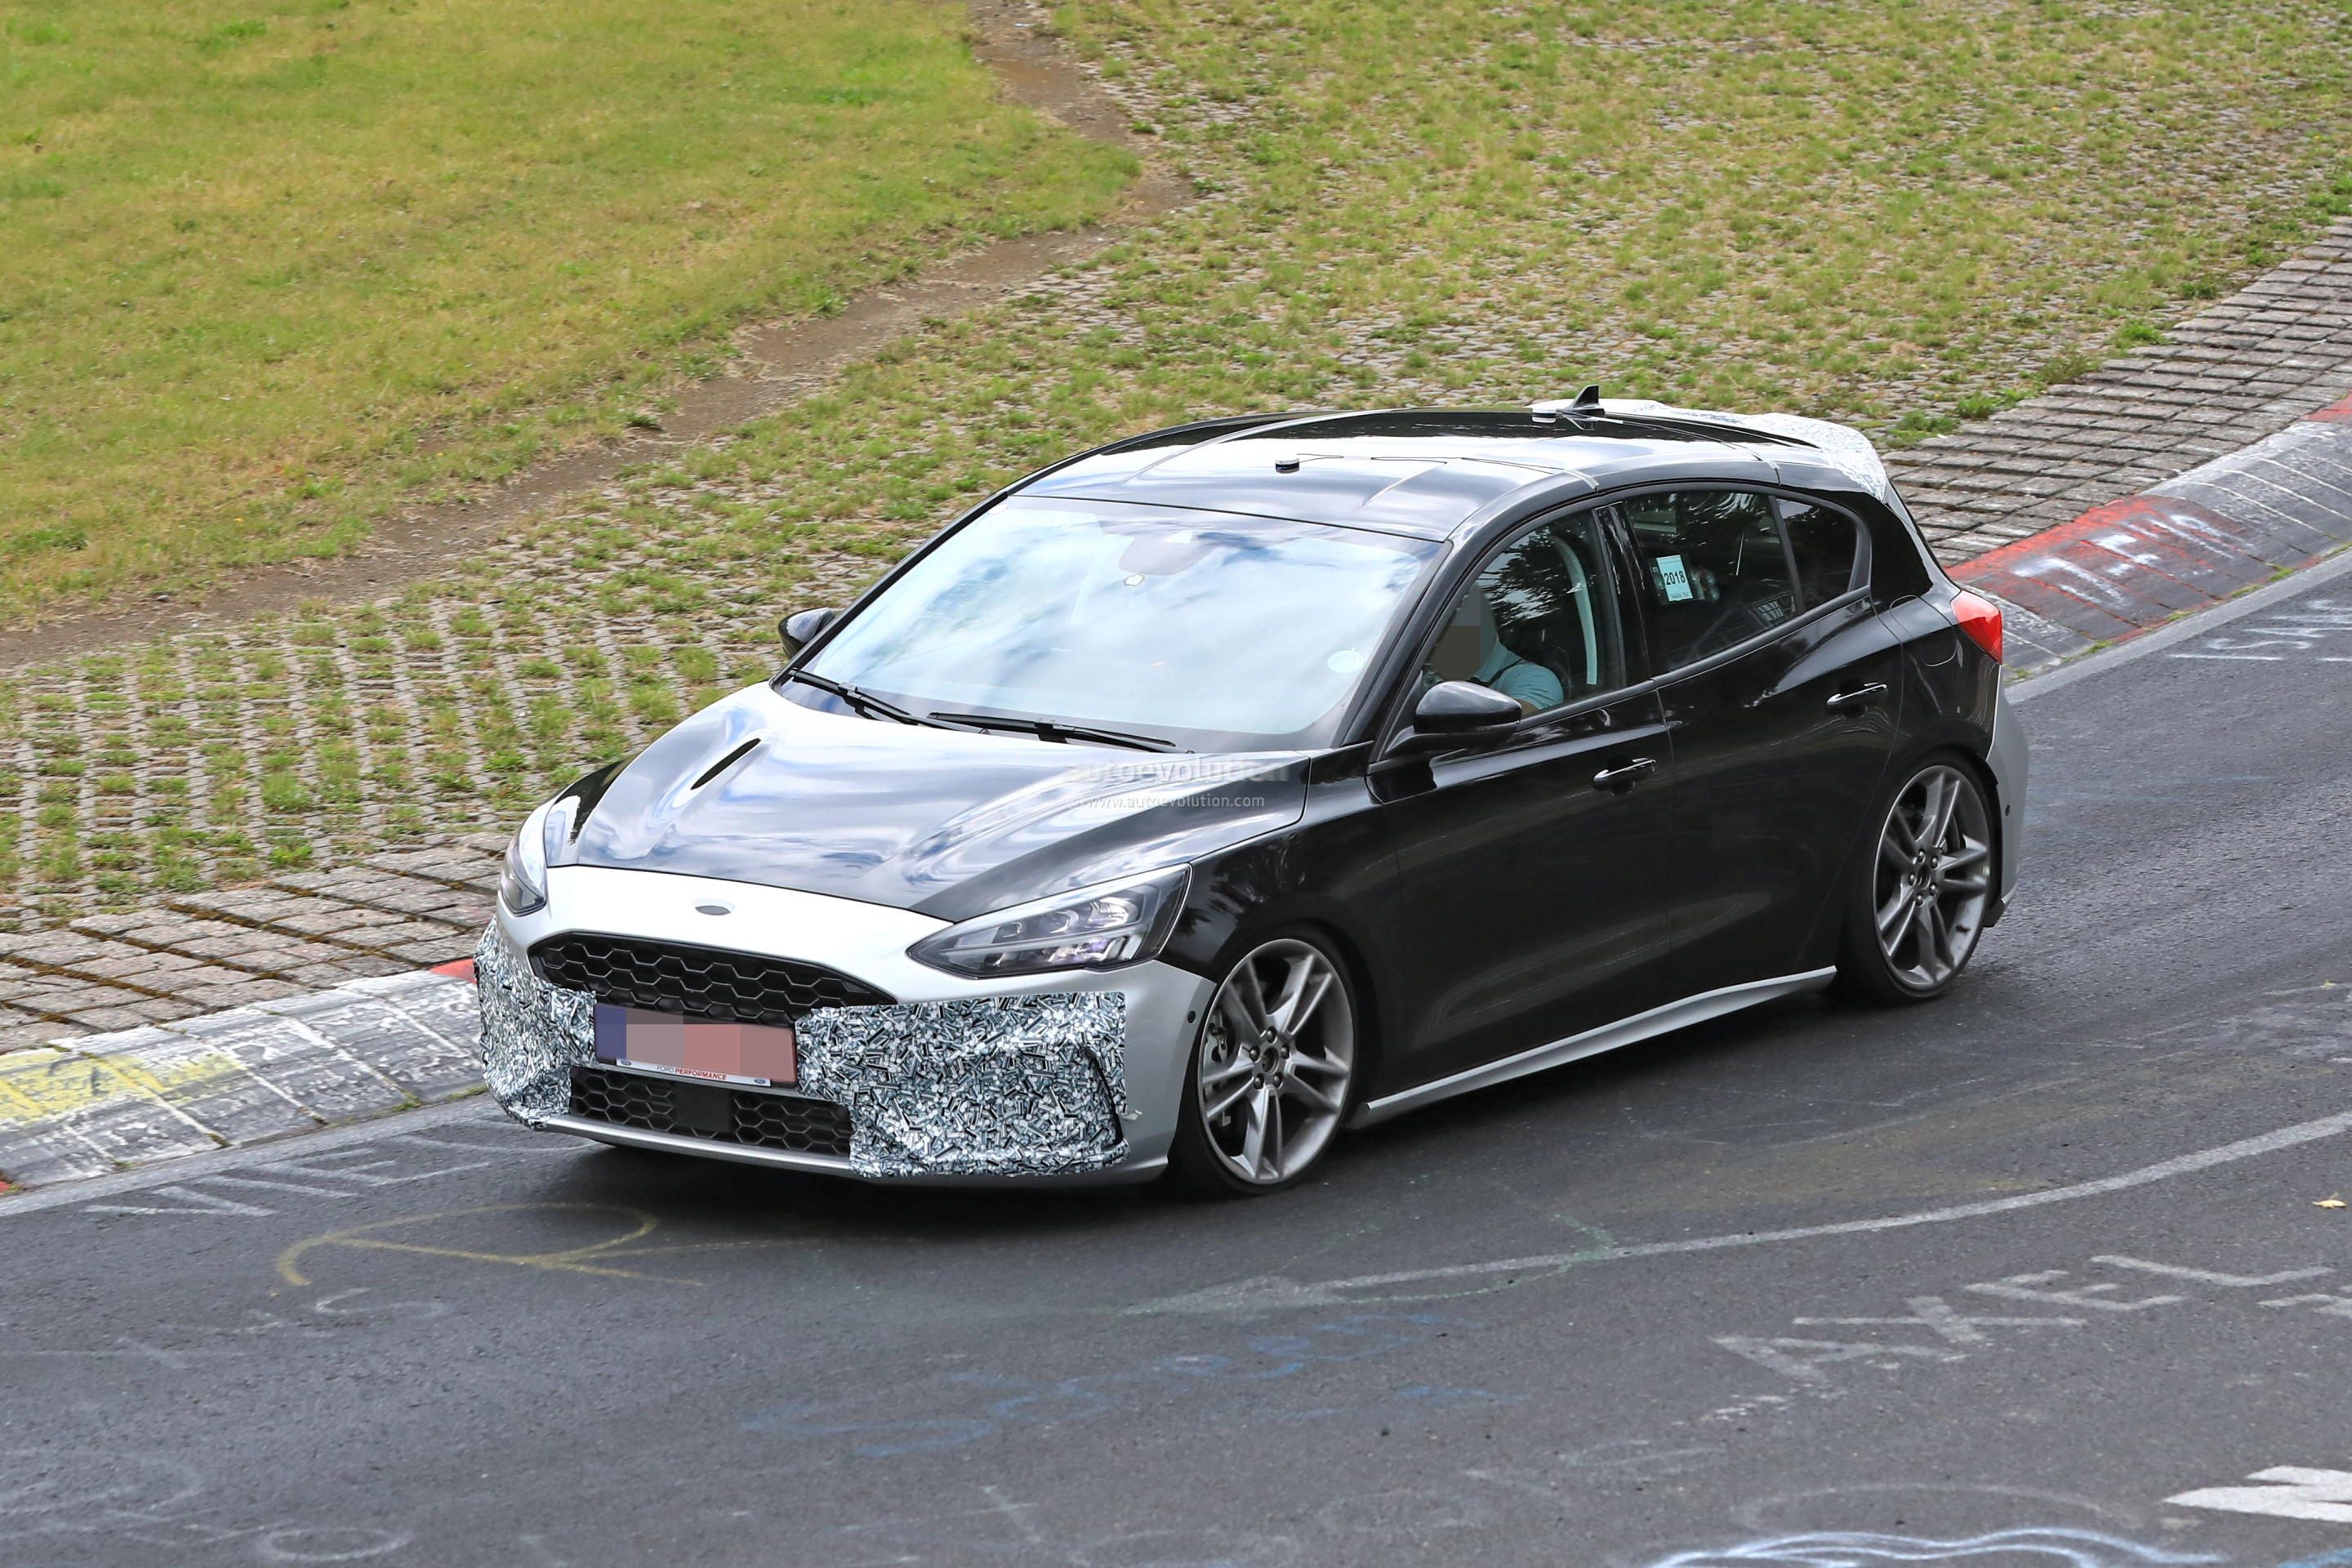 2018 - [Ford] Focus IV - Page 13 New-ford-focus-st-hits-nurburgring-will-offer-20l-turbo-and-automatic-127877_1